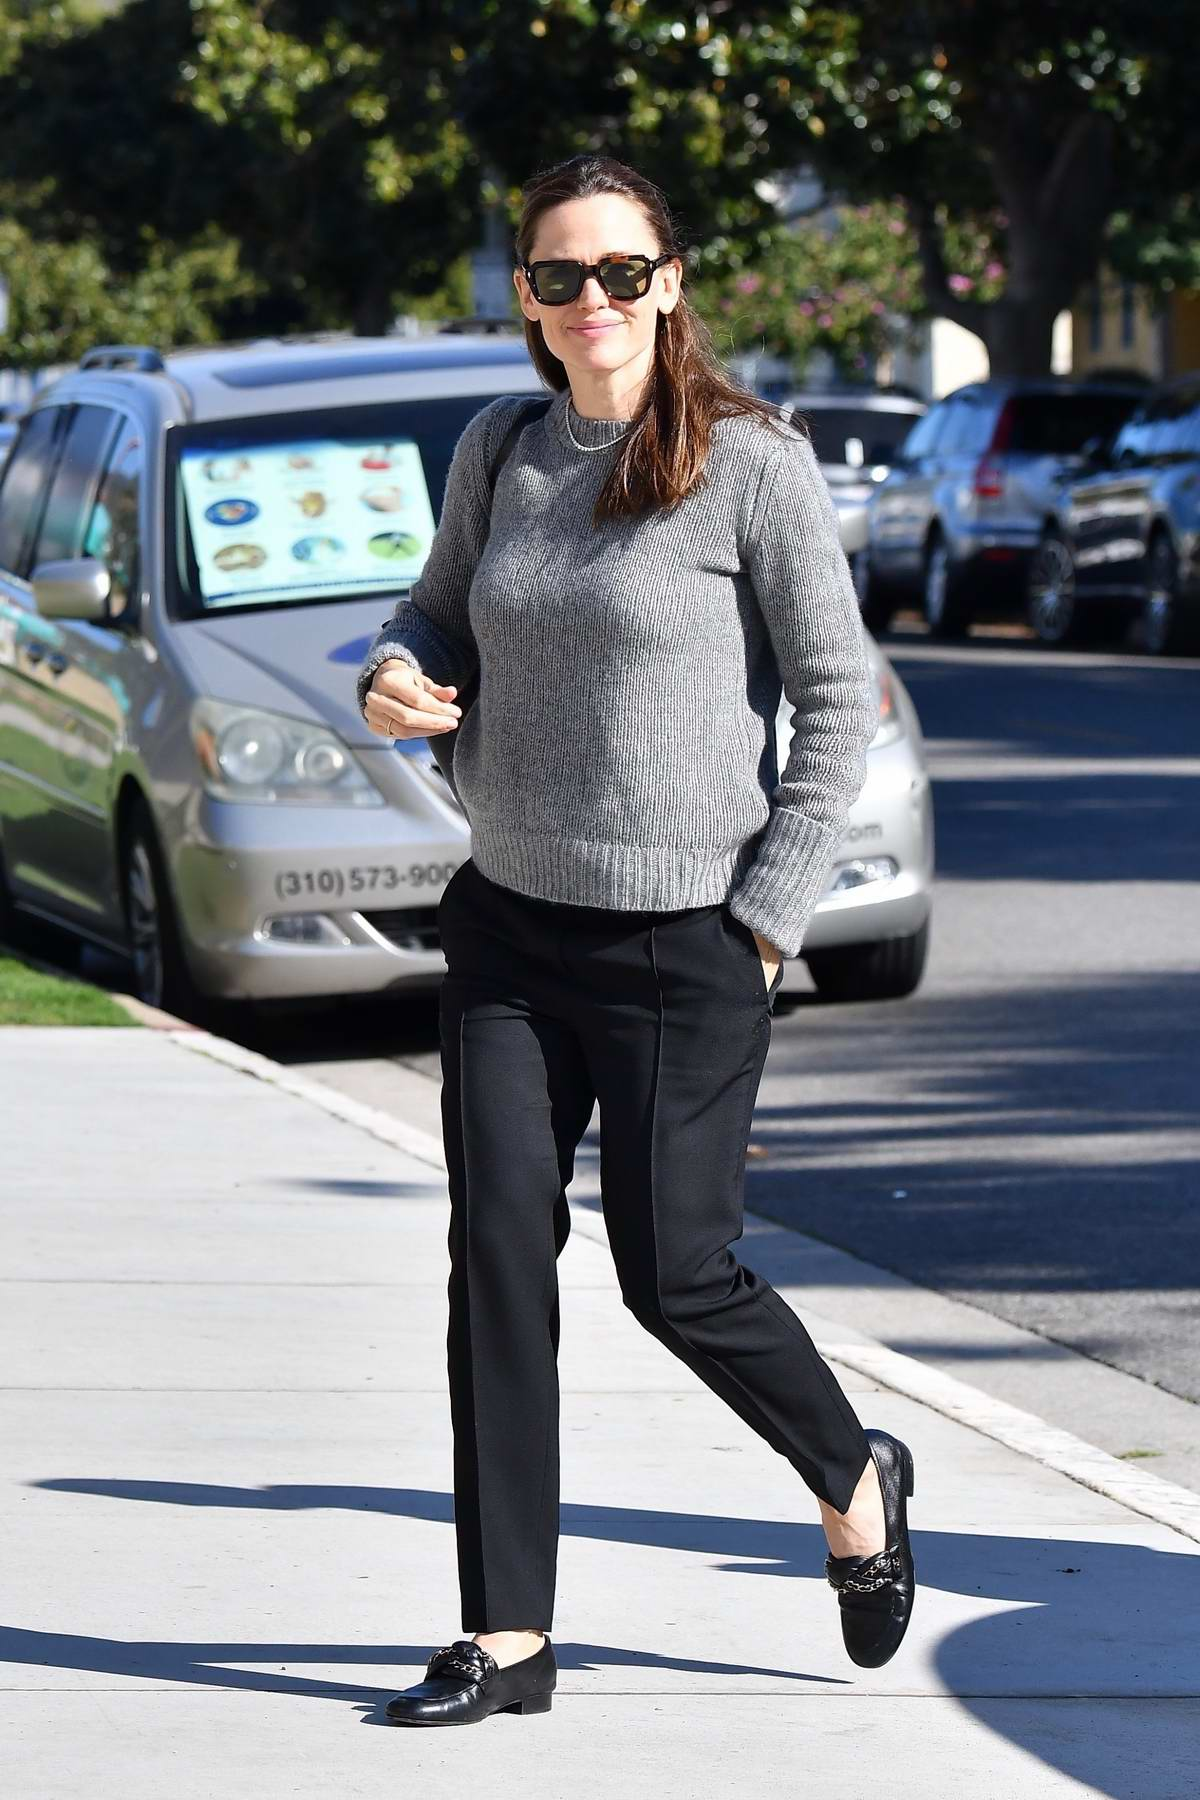 Jennifer Garner arrives for Sunday morning church services in Pacific Palisades, California